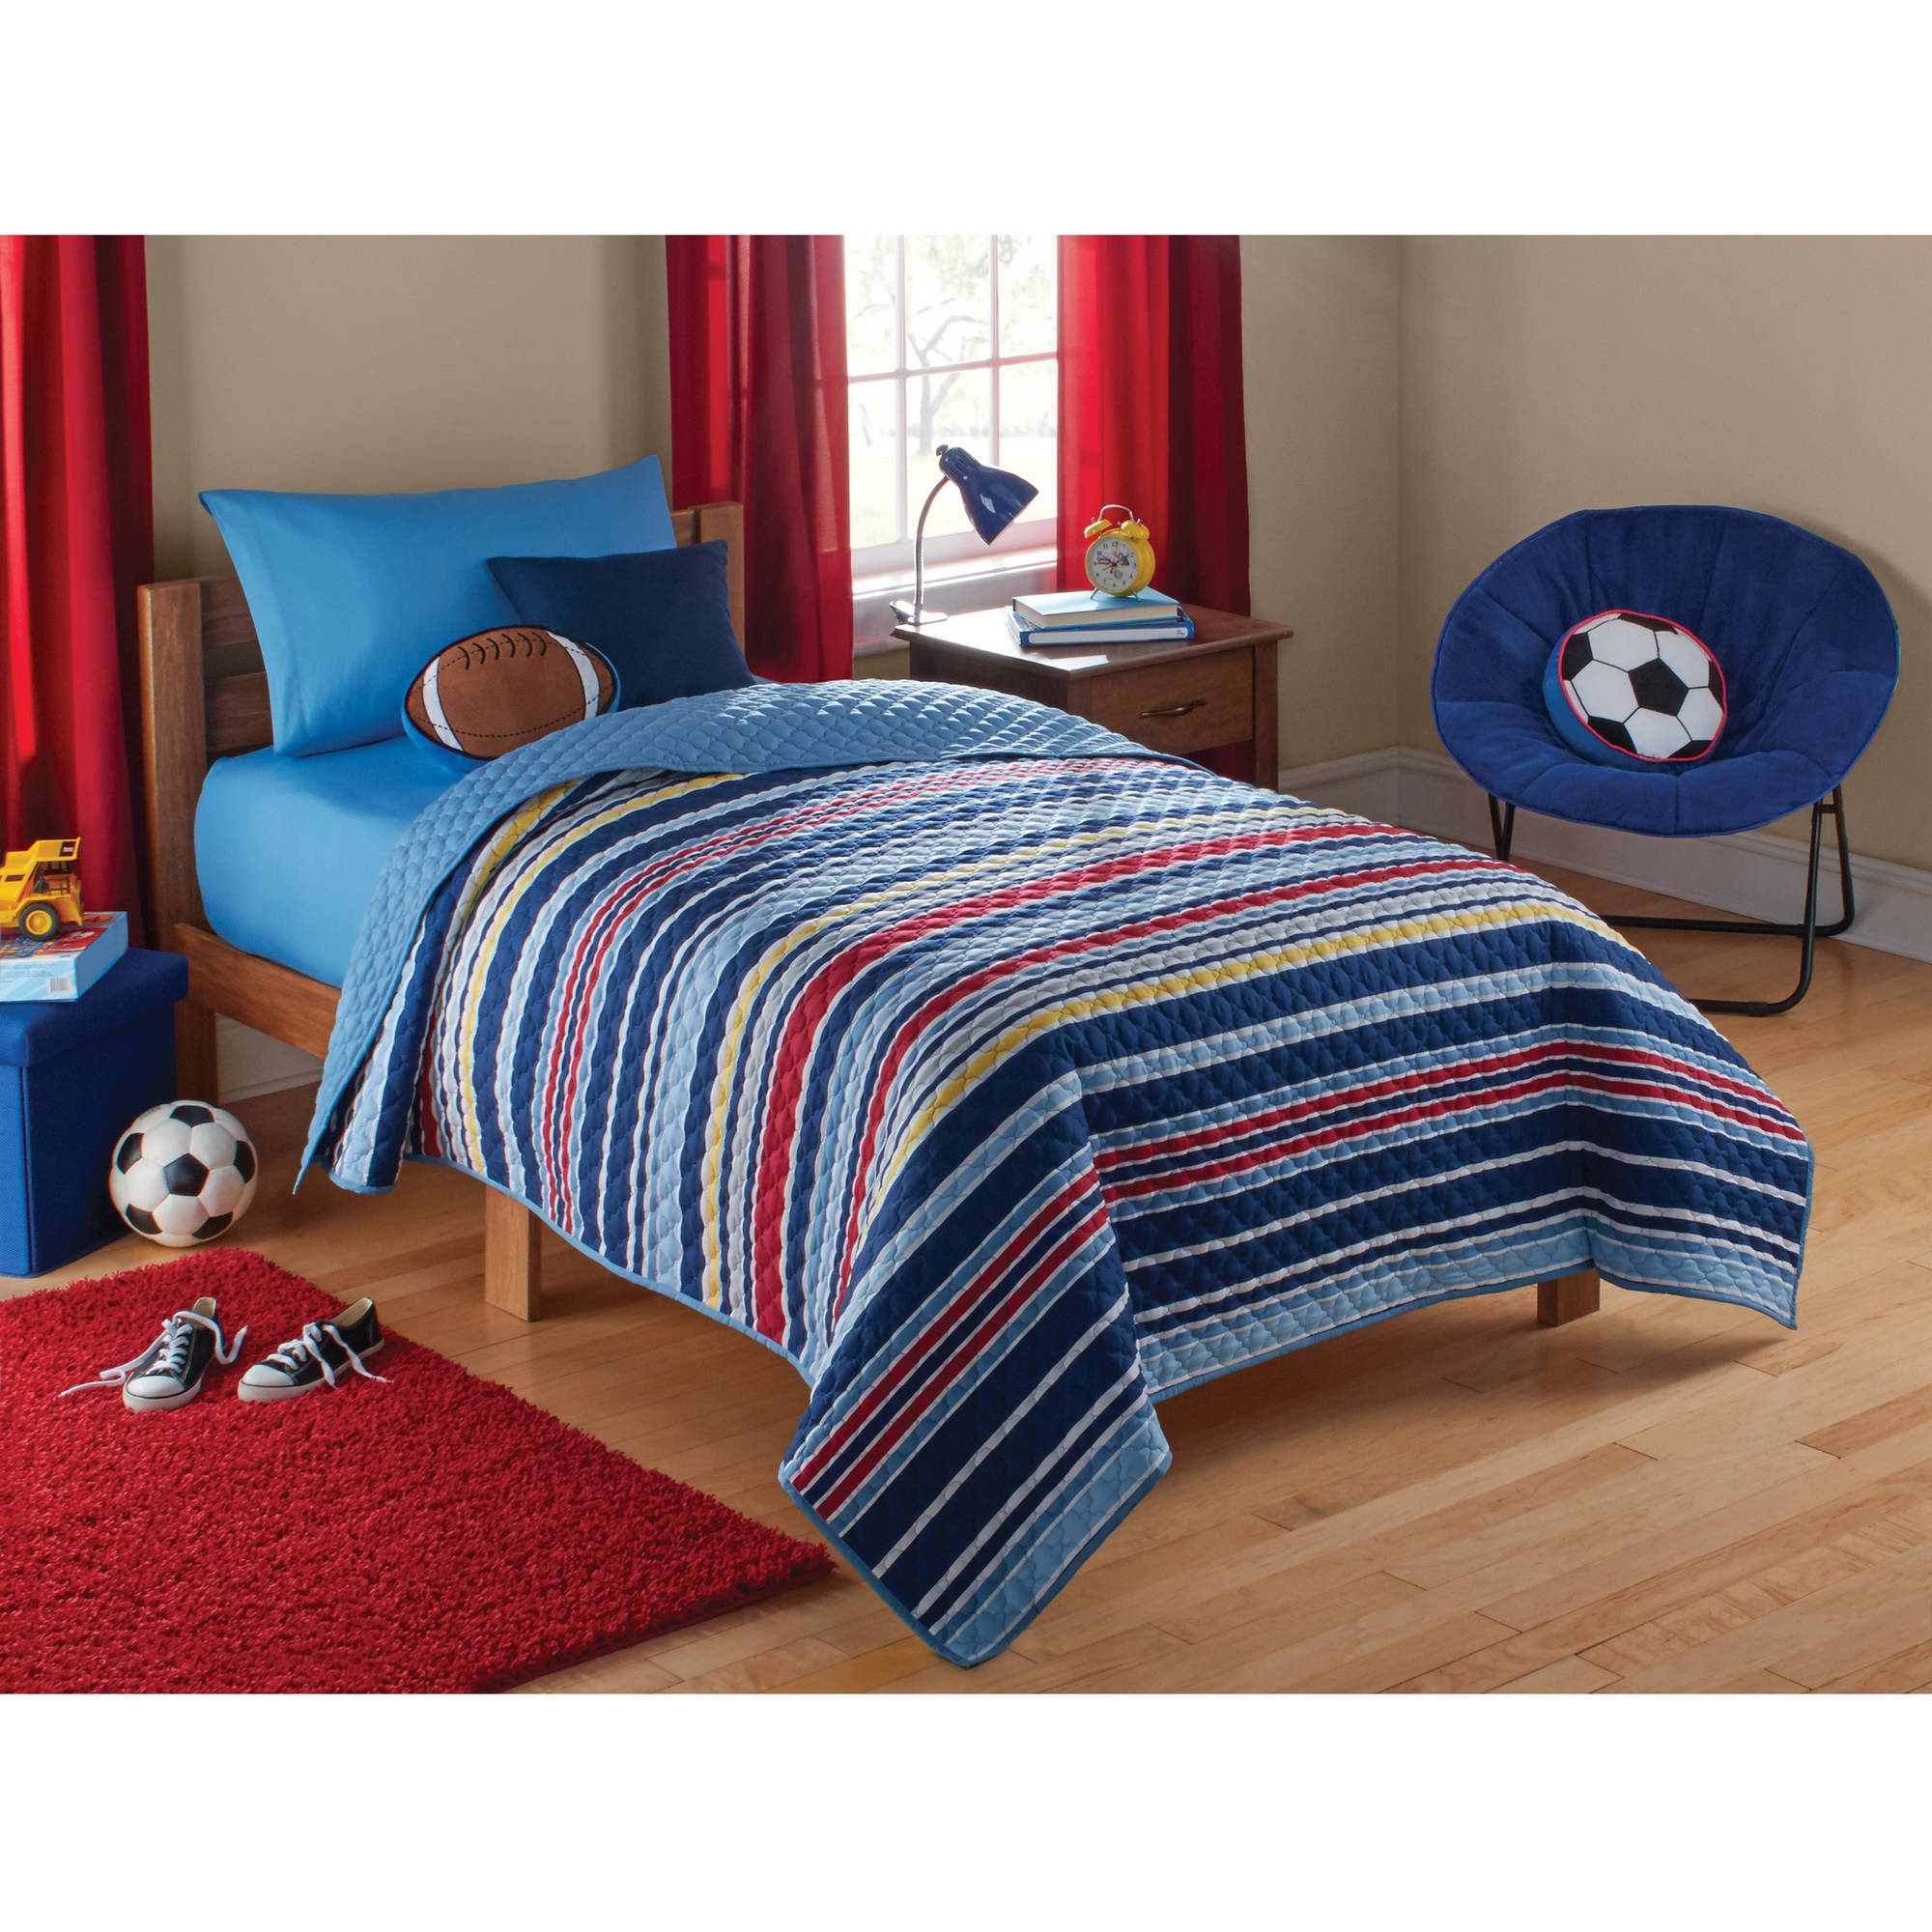 Laura Hart Kids Classic Sports 3-piece Quilt Set - Walmart.com : kids quilt - Adamdwight.com